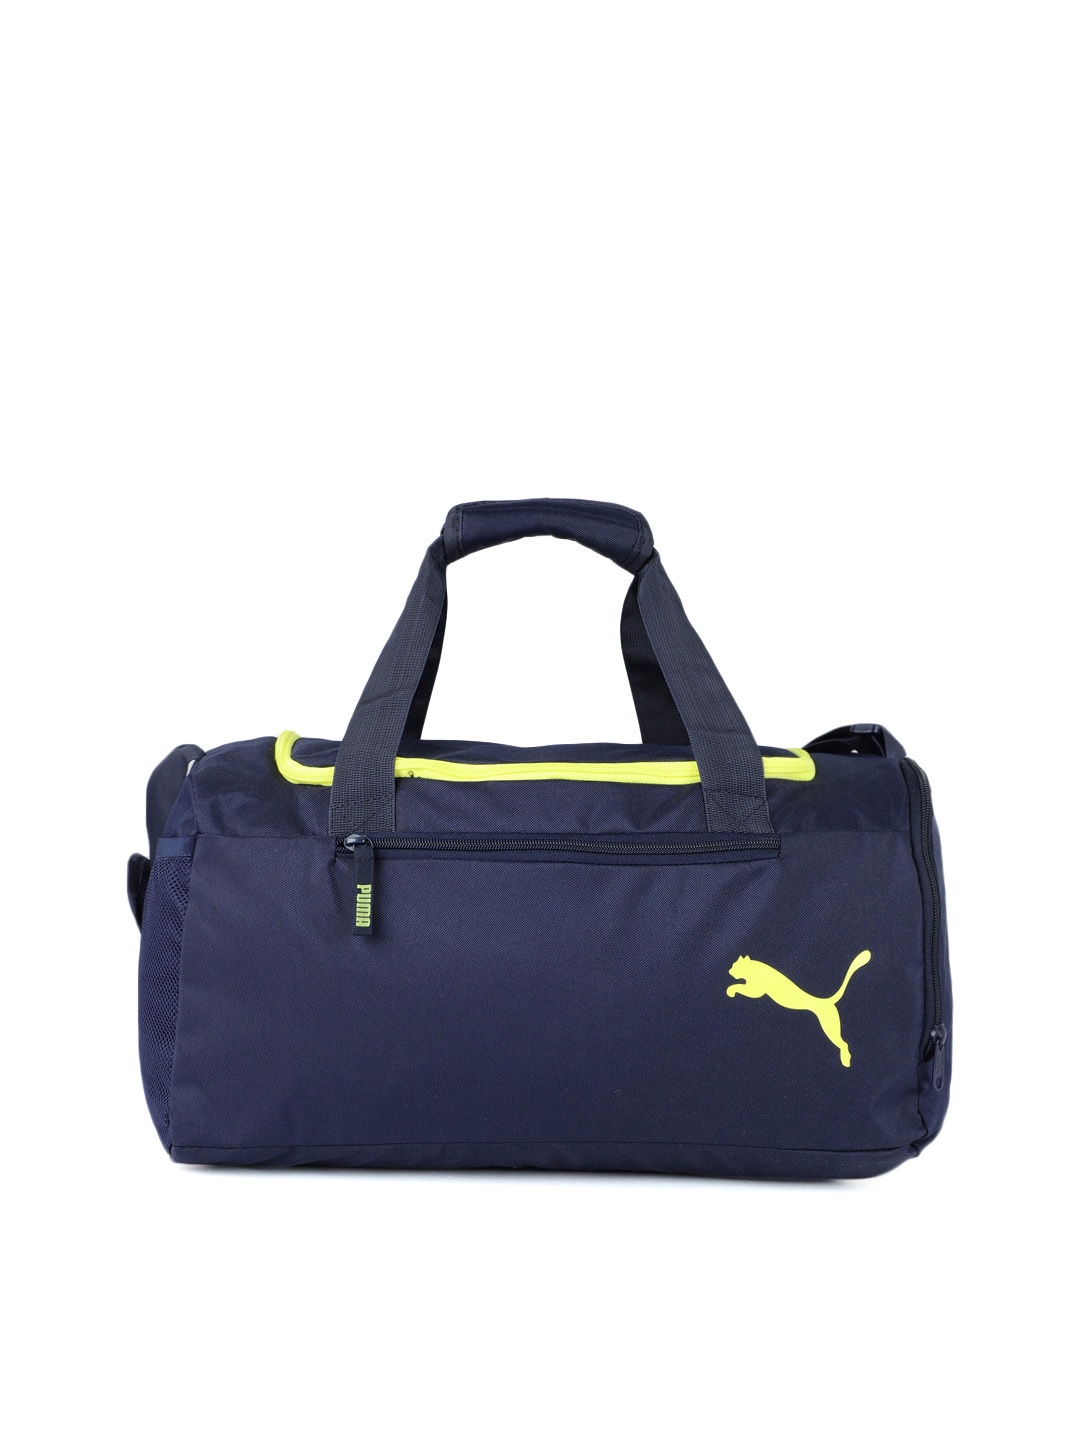 d2aba142fd Puma Duffel Bag - Buy Puma Duffel Bag online in India